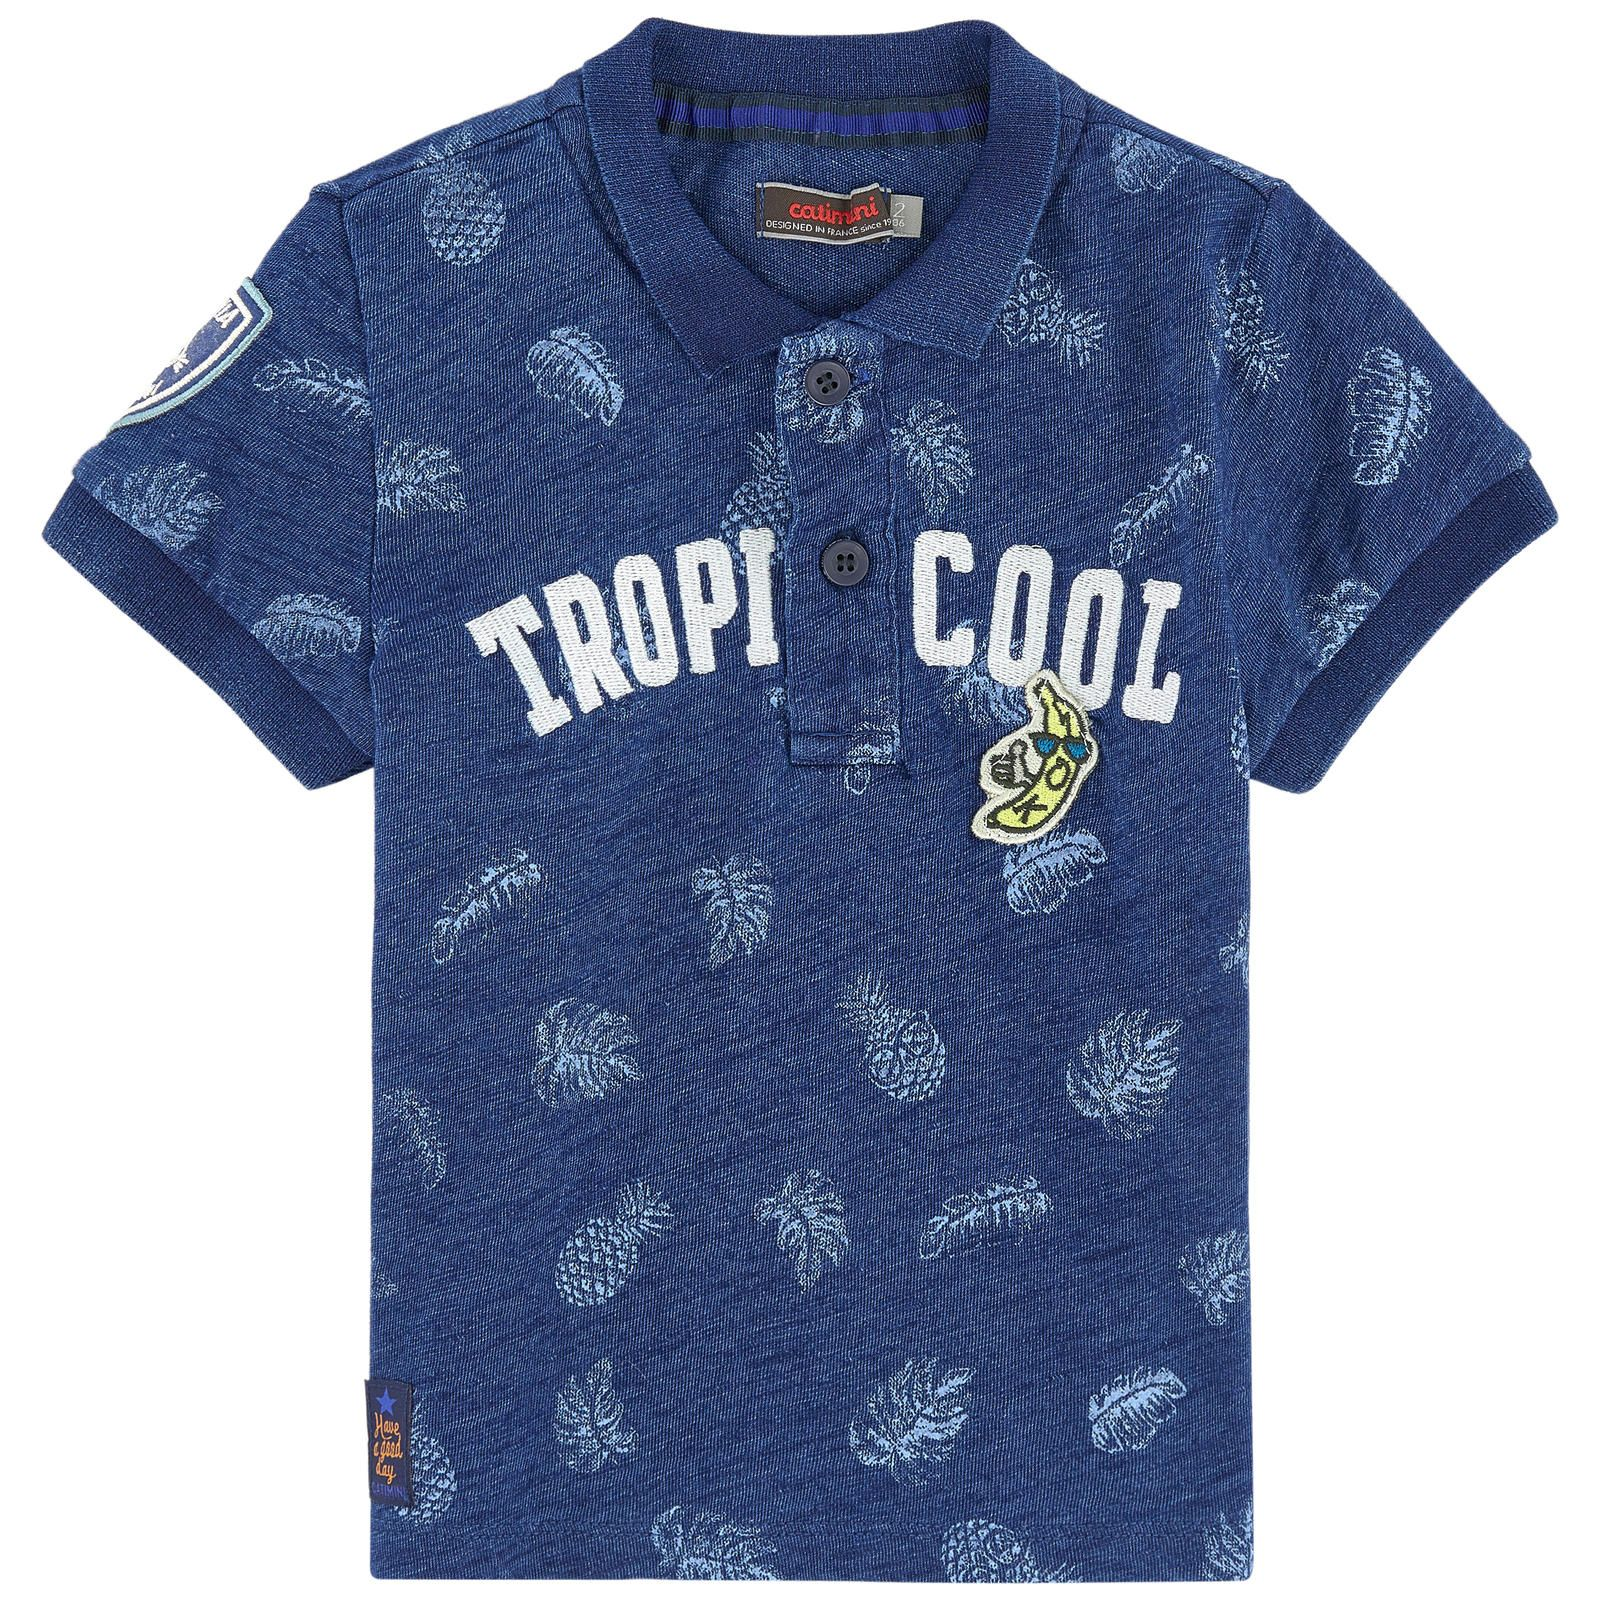 Cotton jersey  Pleasant to the touch Straight fit Polo collar Short sleeves Stretch ribbed knit trims Button strap on the chest Fancy print Embroidered brand Fancy patch - $ 76